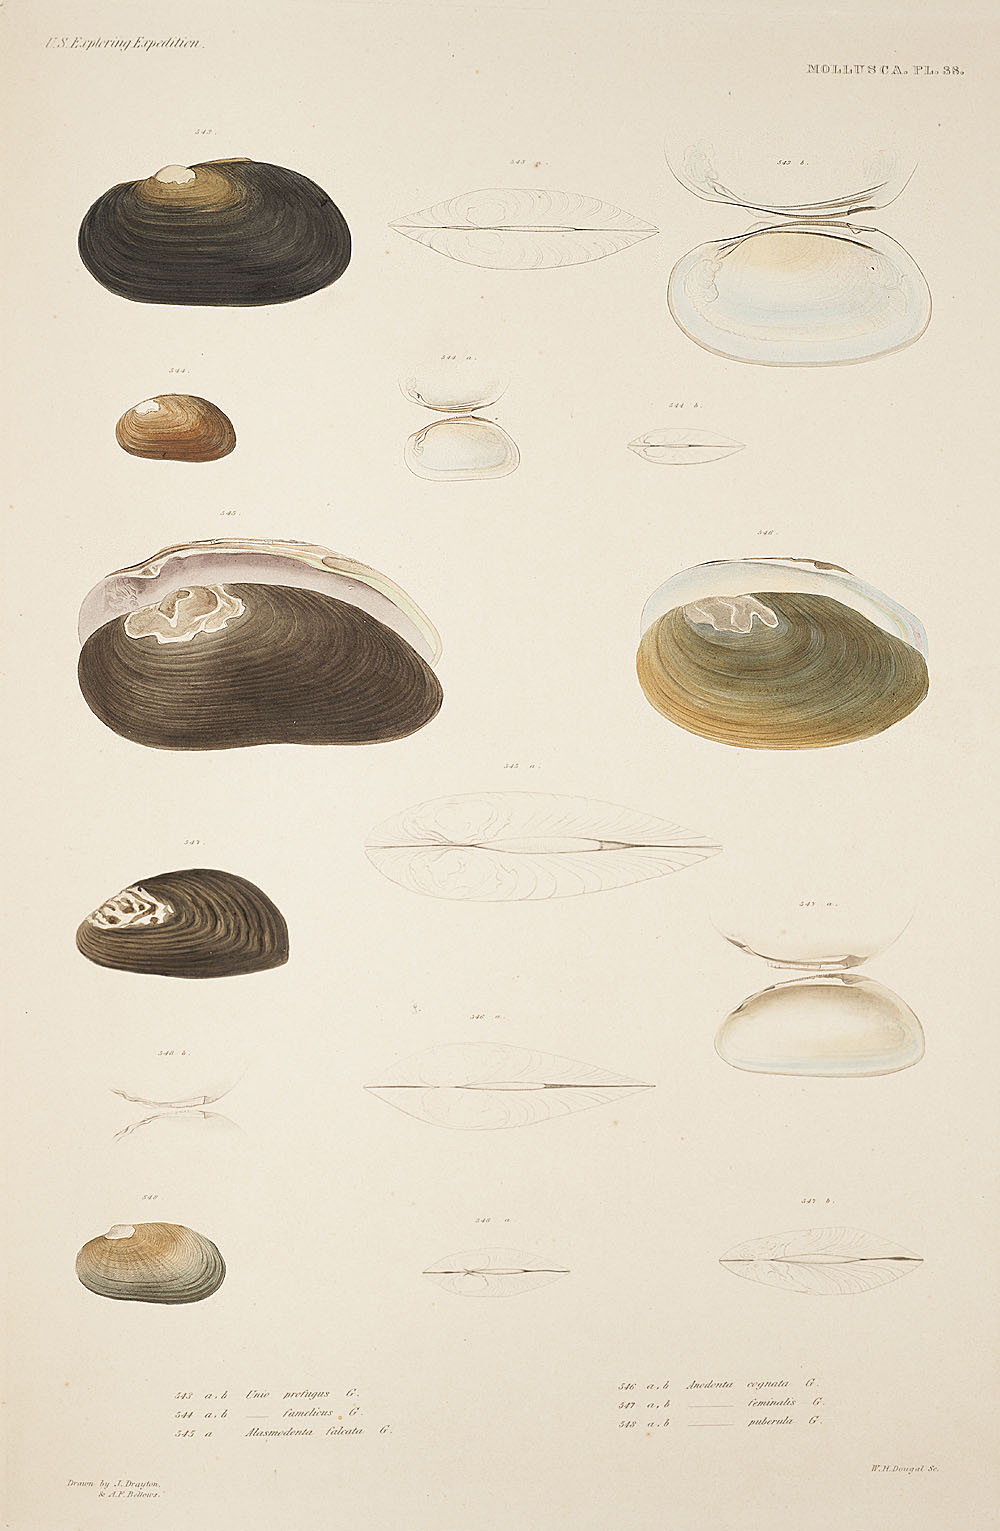 Mollusca, Pl. 38,  Image number:sil19-18-097b